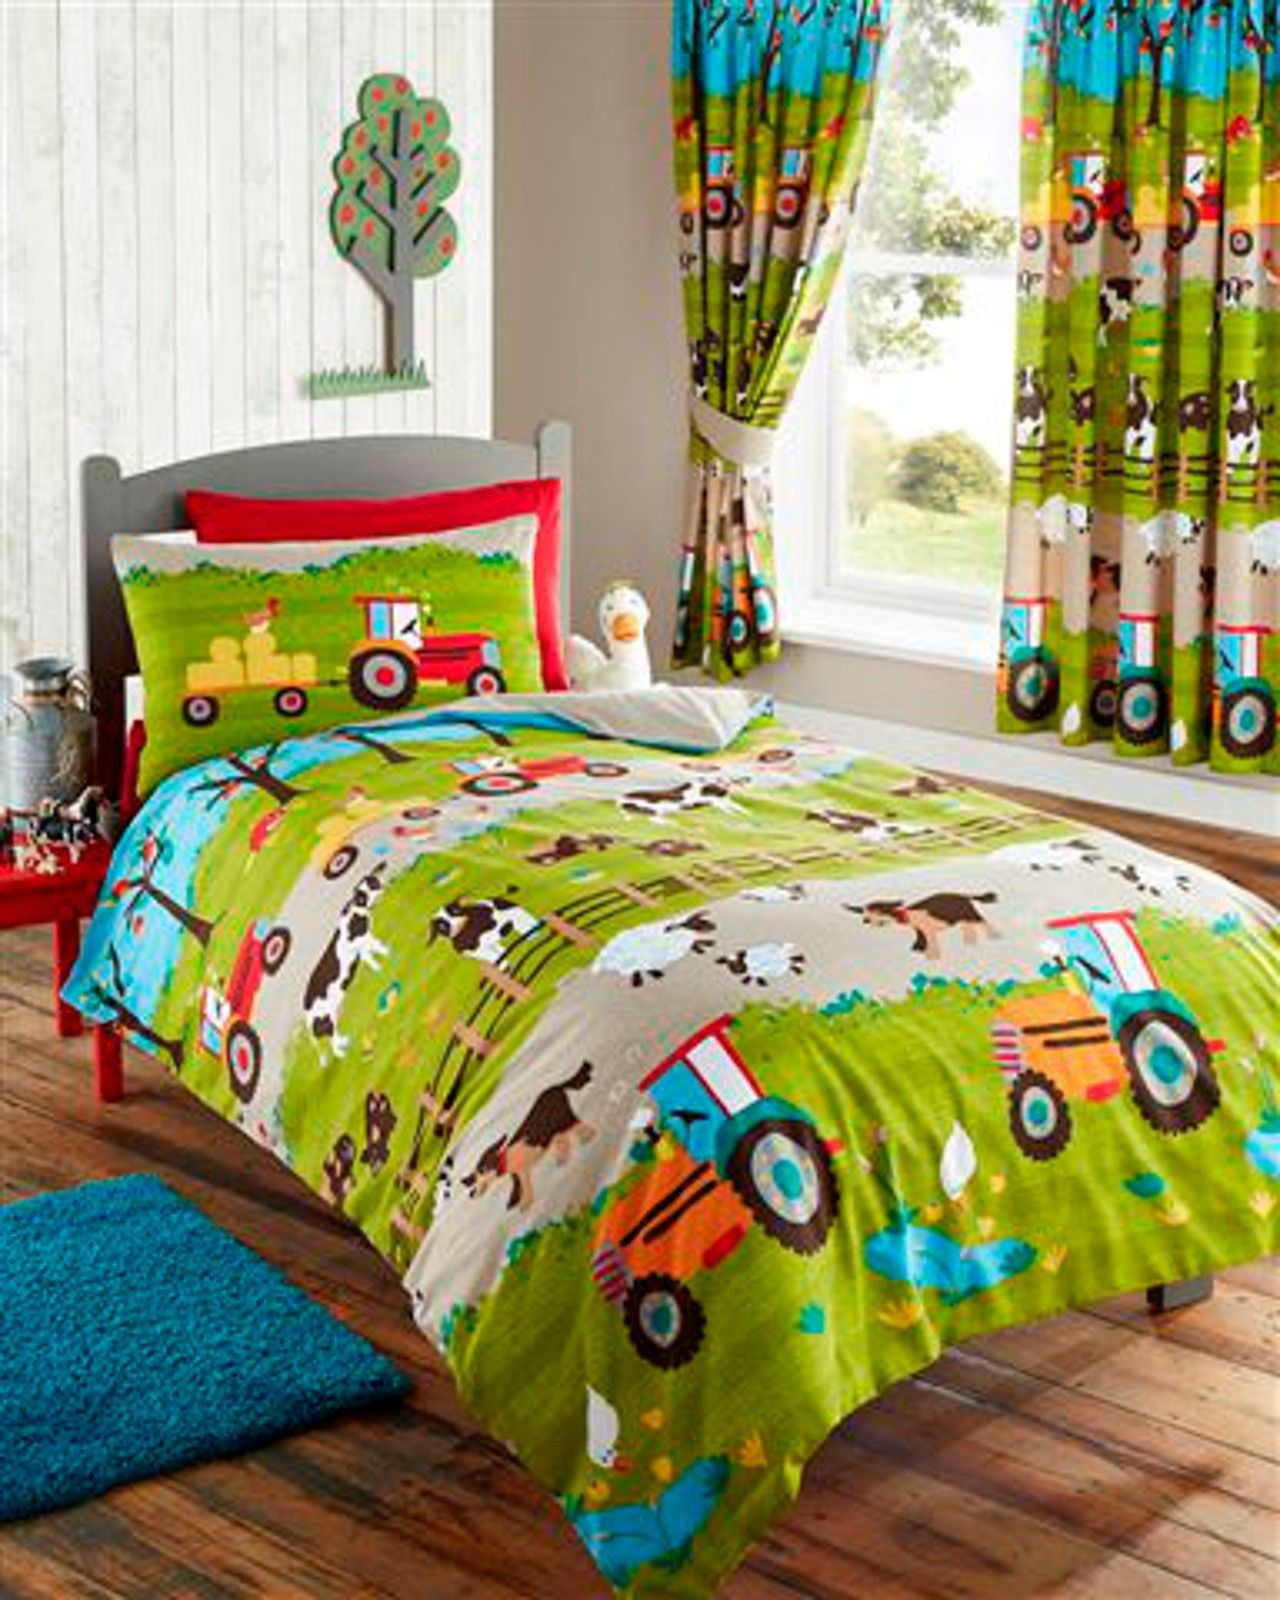 Kids Bedding With Tractor Diy Bed Linens Sets Duvet Covers